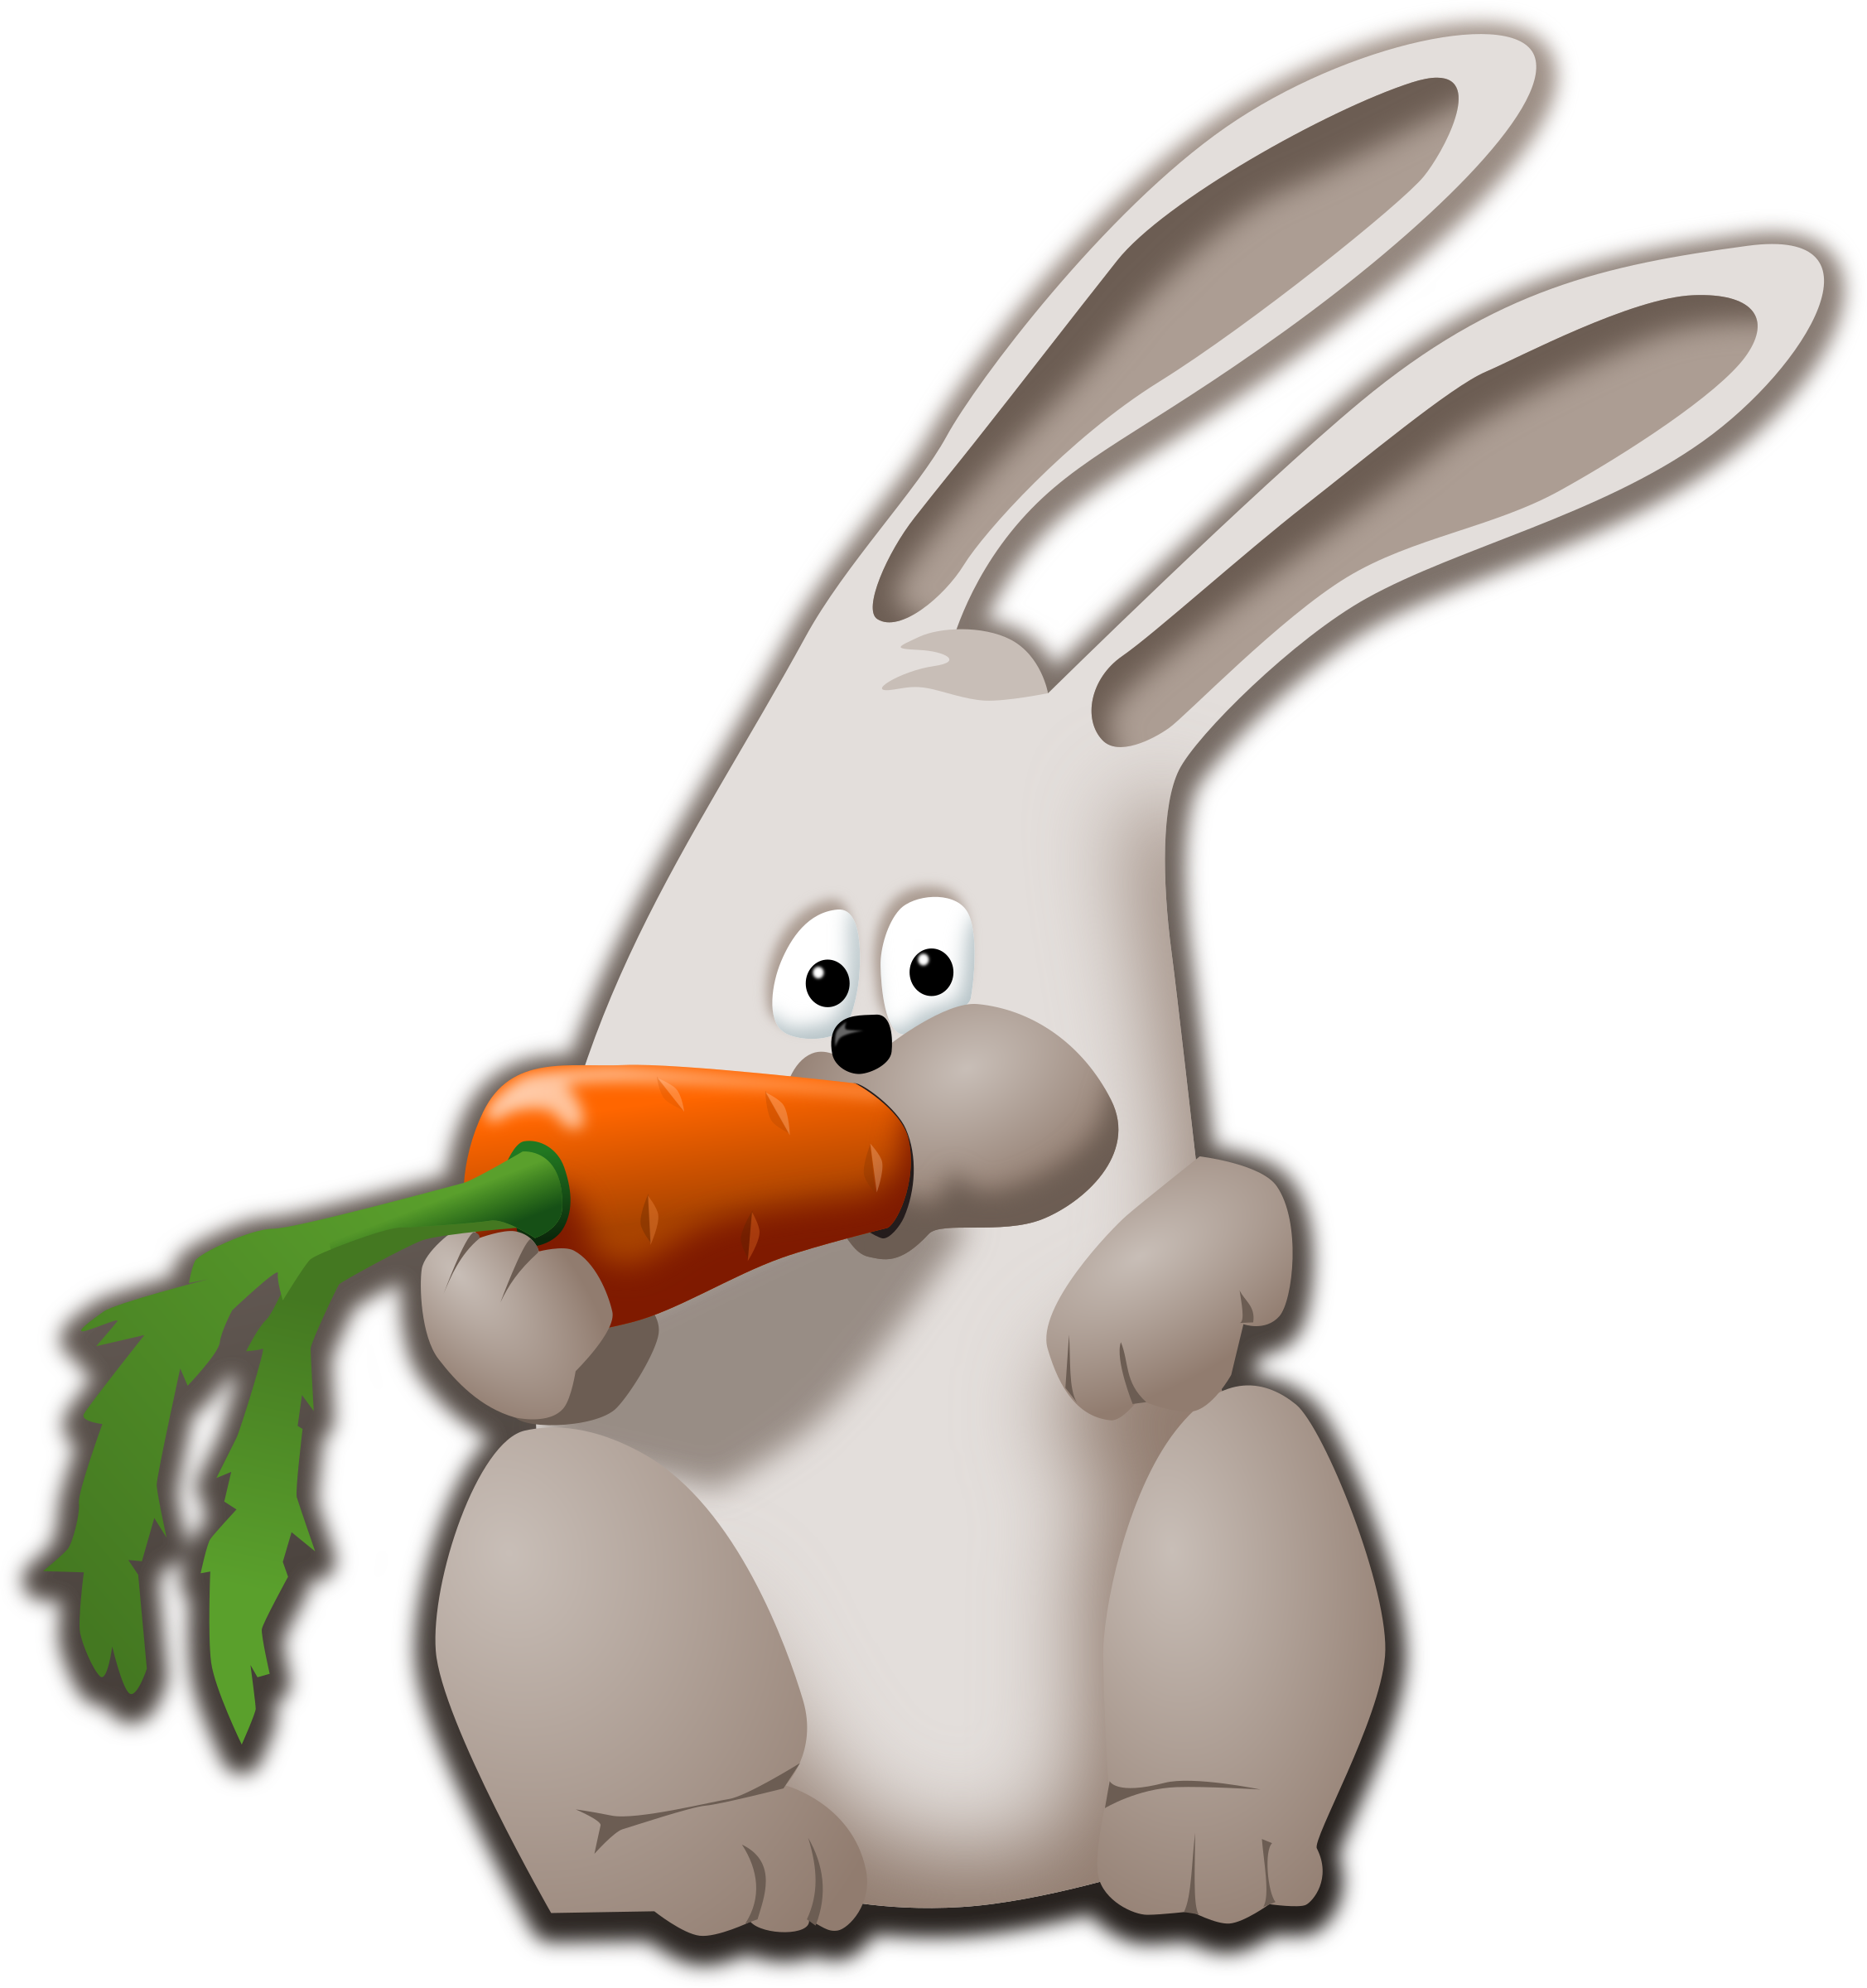 Eating big image png. Clipart bunny carrot